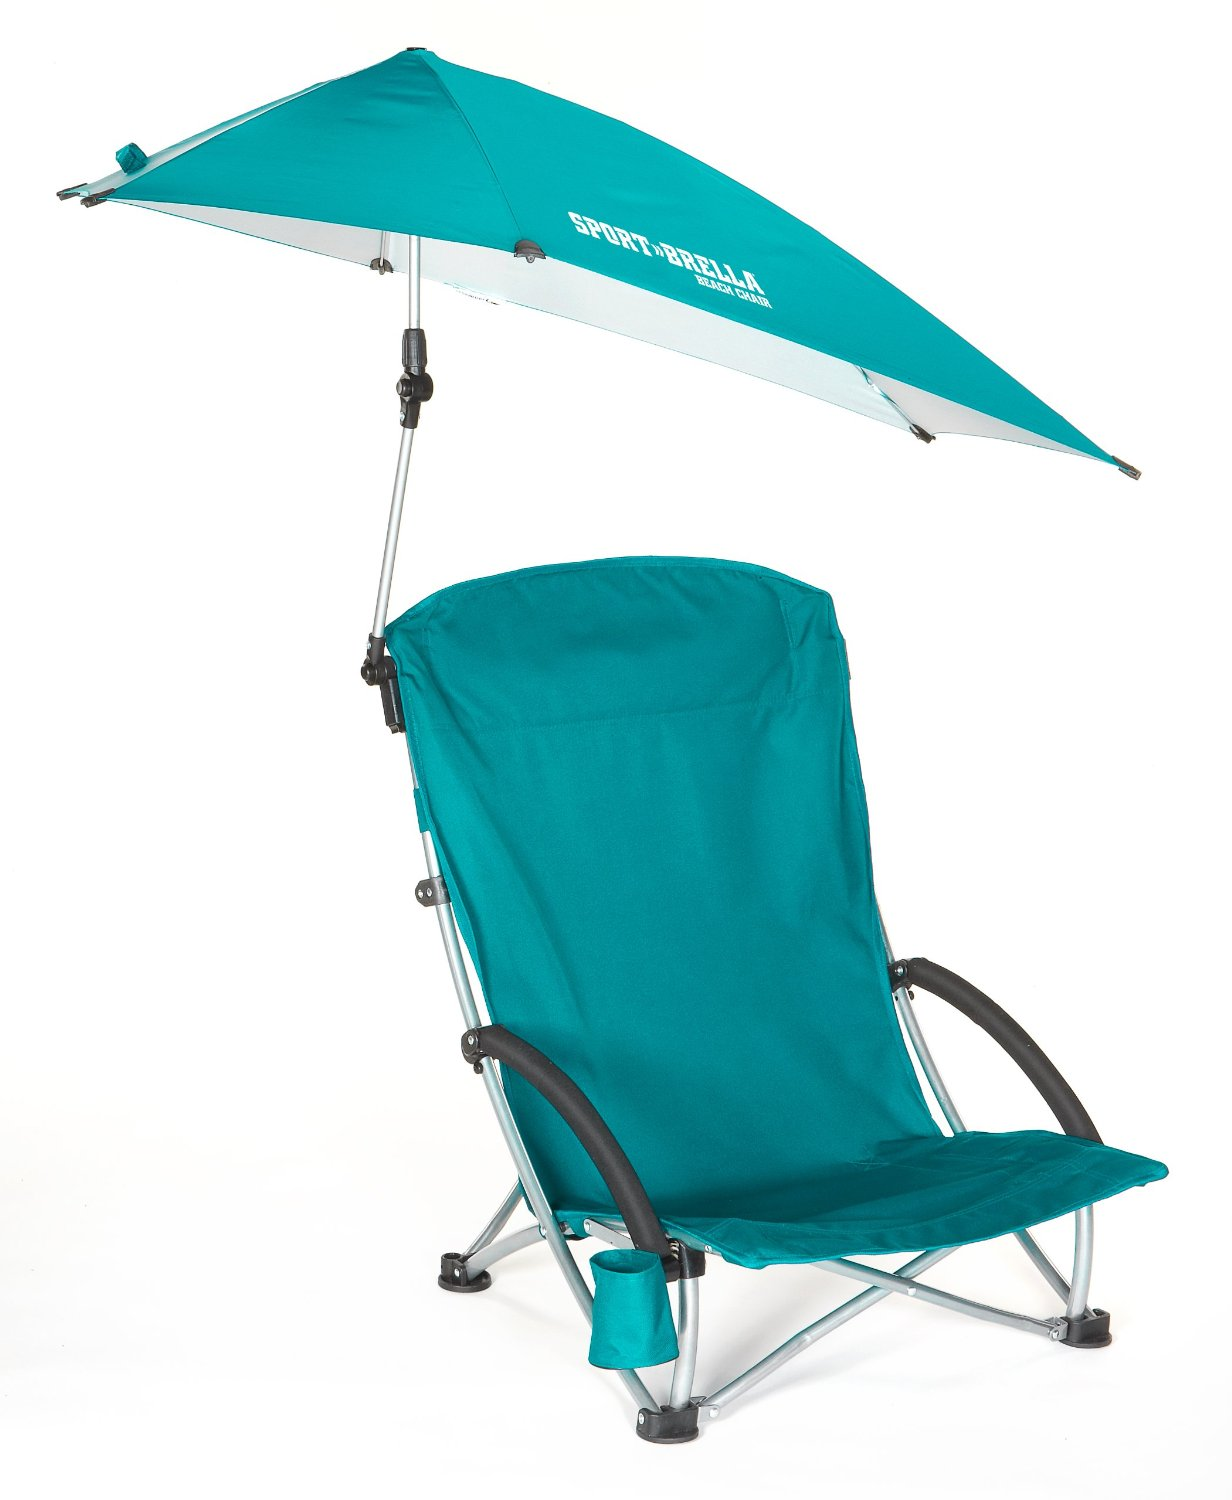 Beach Umbrella Review May 2013